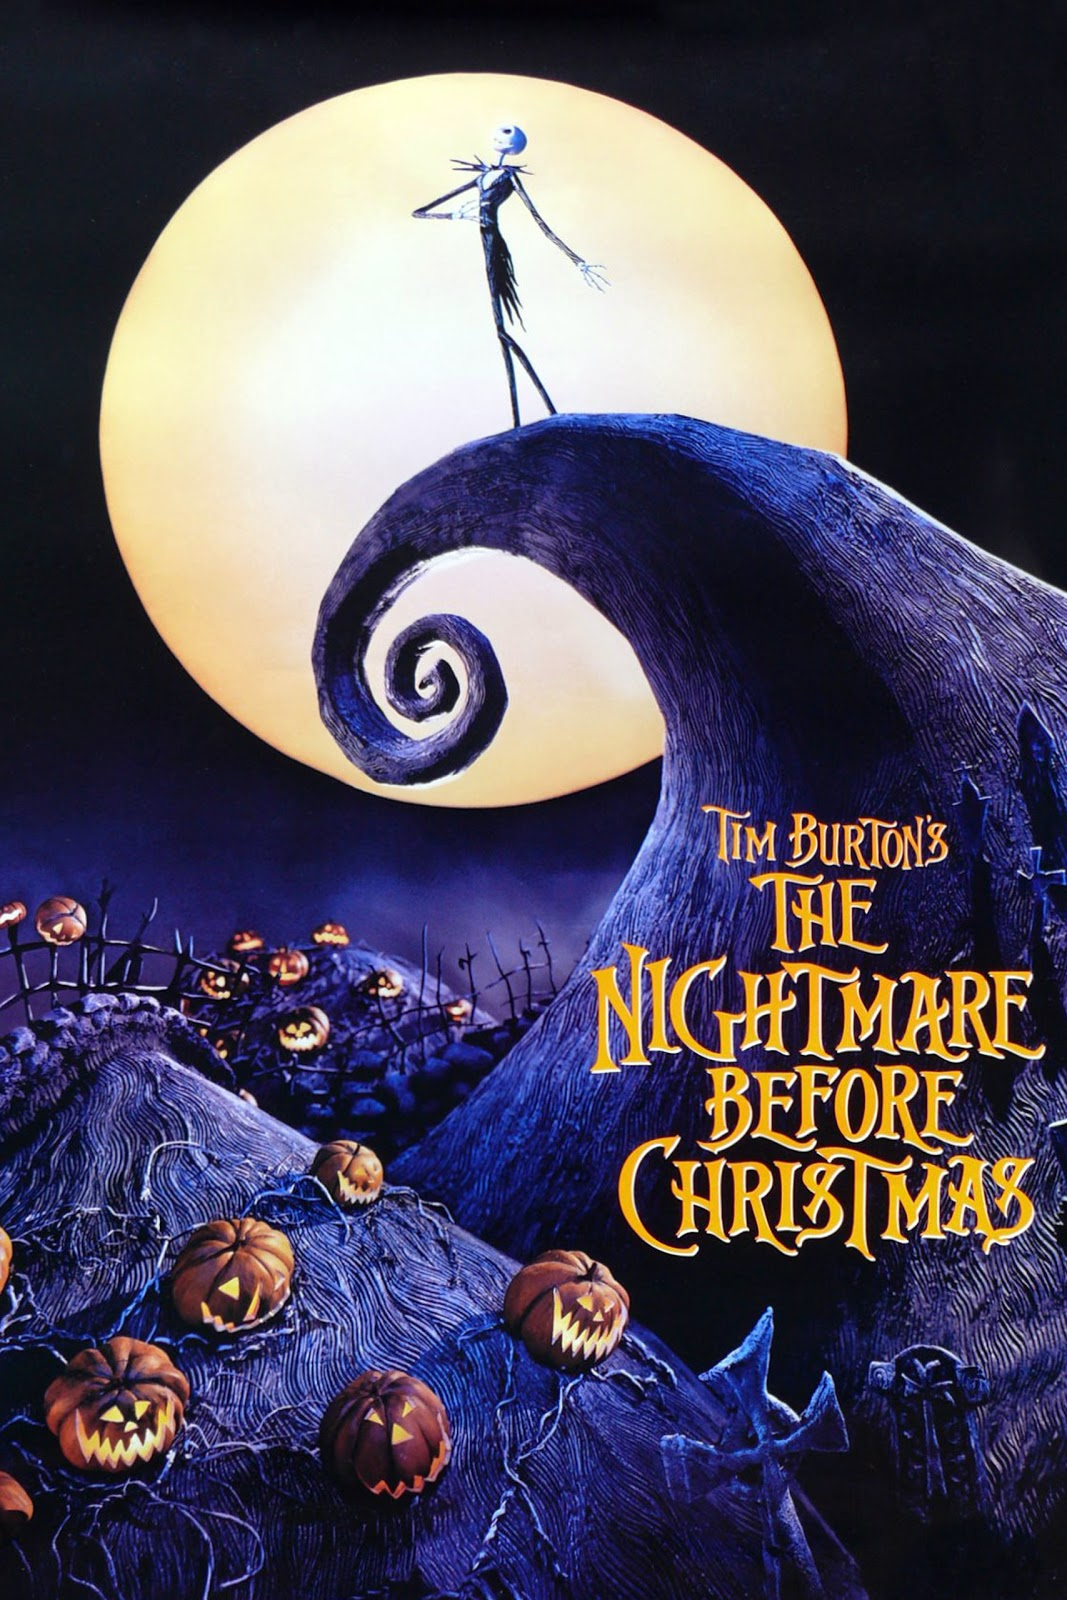 Nightmare Before Christmas Iphone Wallpaper Tumblr 83176 | INFOBIT